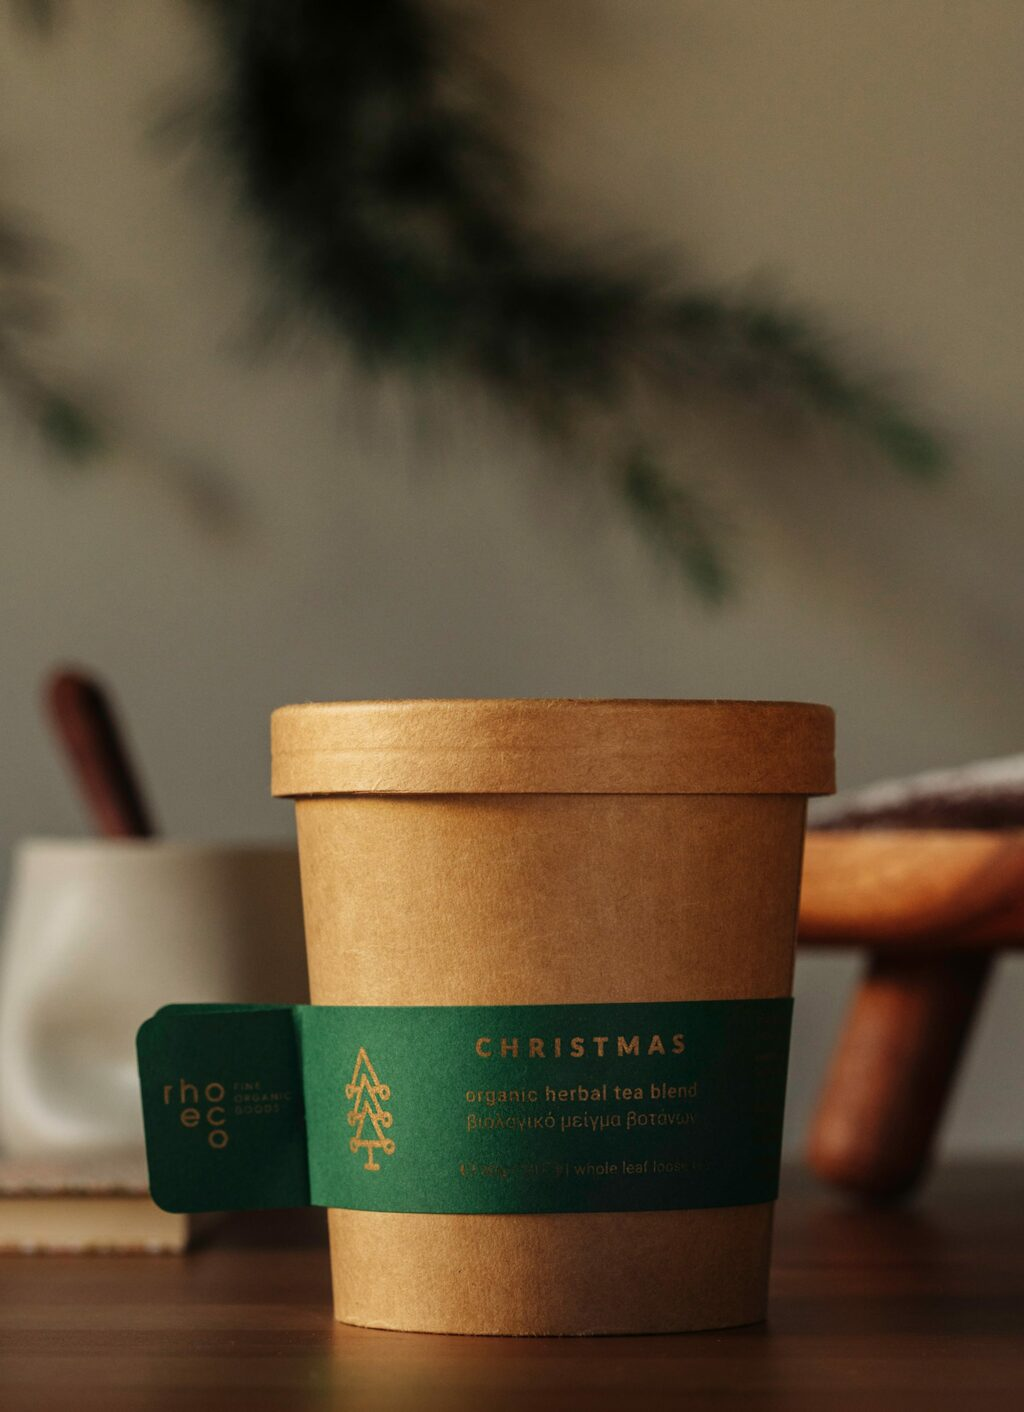 Rhoeco - Organic Tea - Drink it - Plant it - Christmas Edition